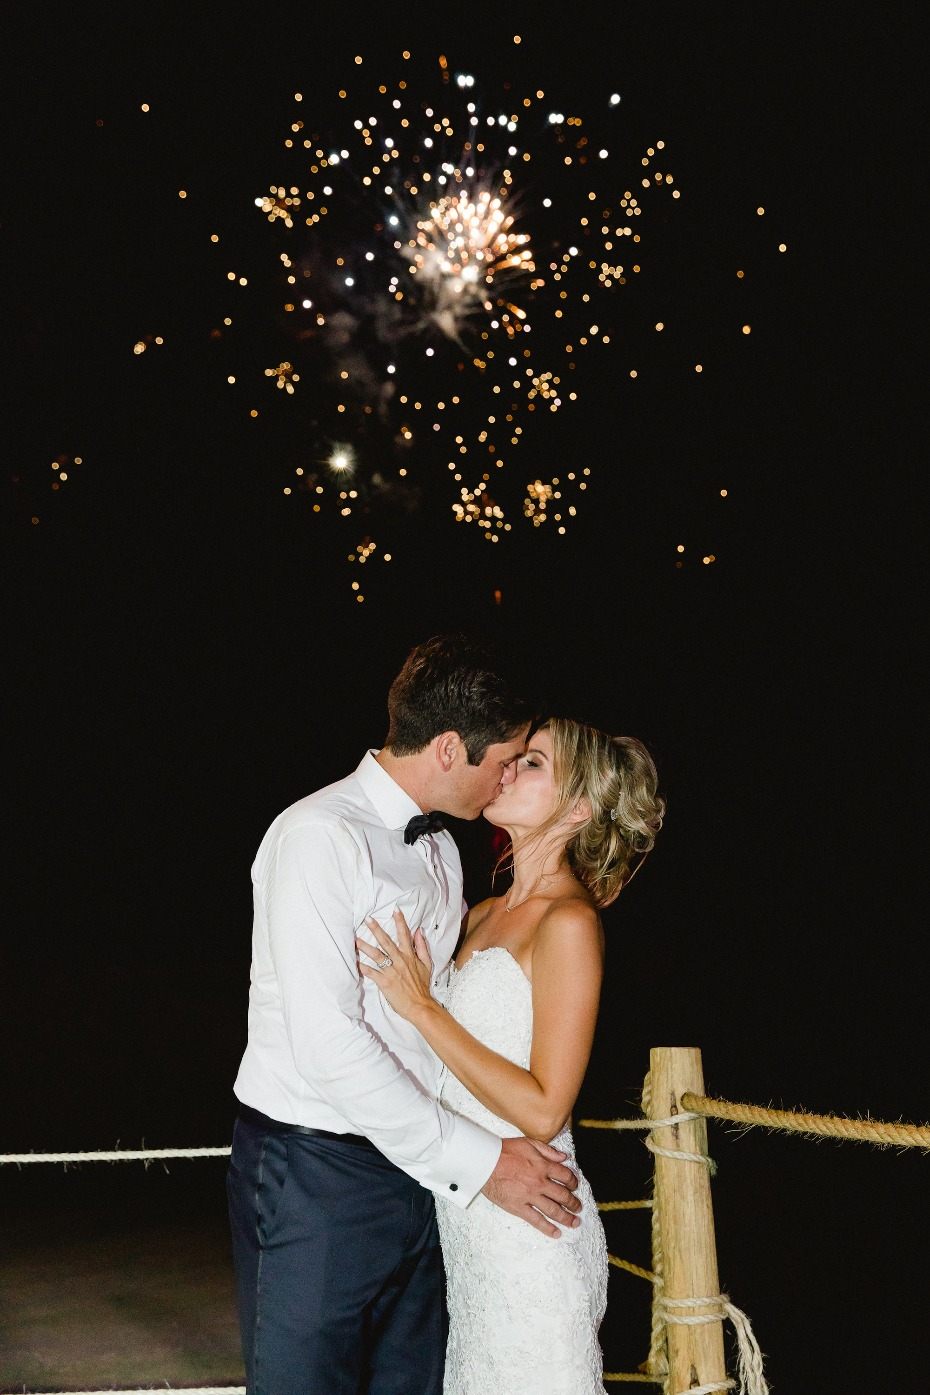 Fireworks for the newlyweds